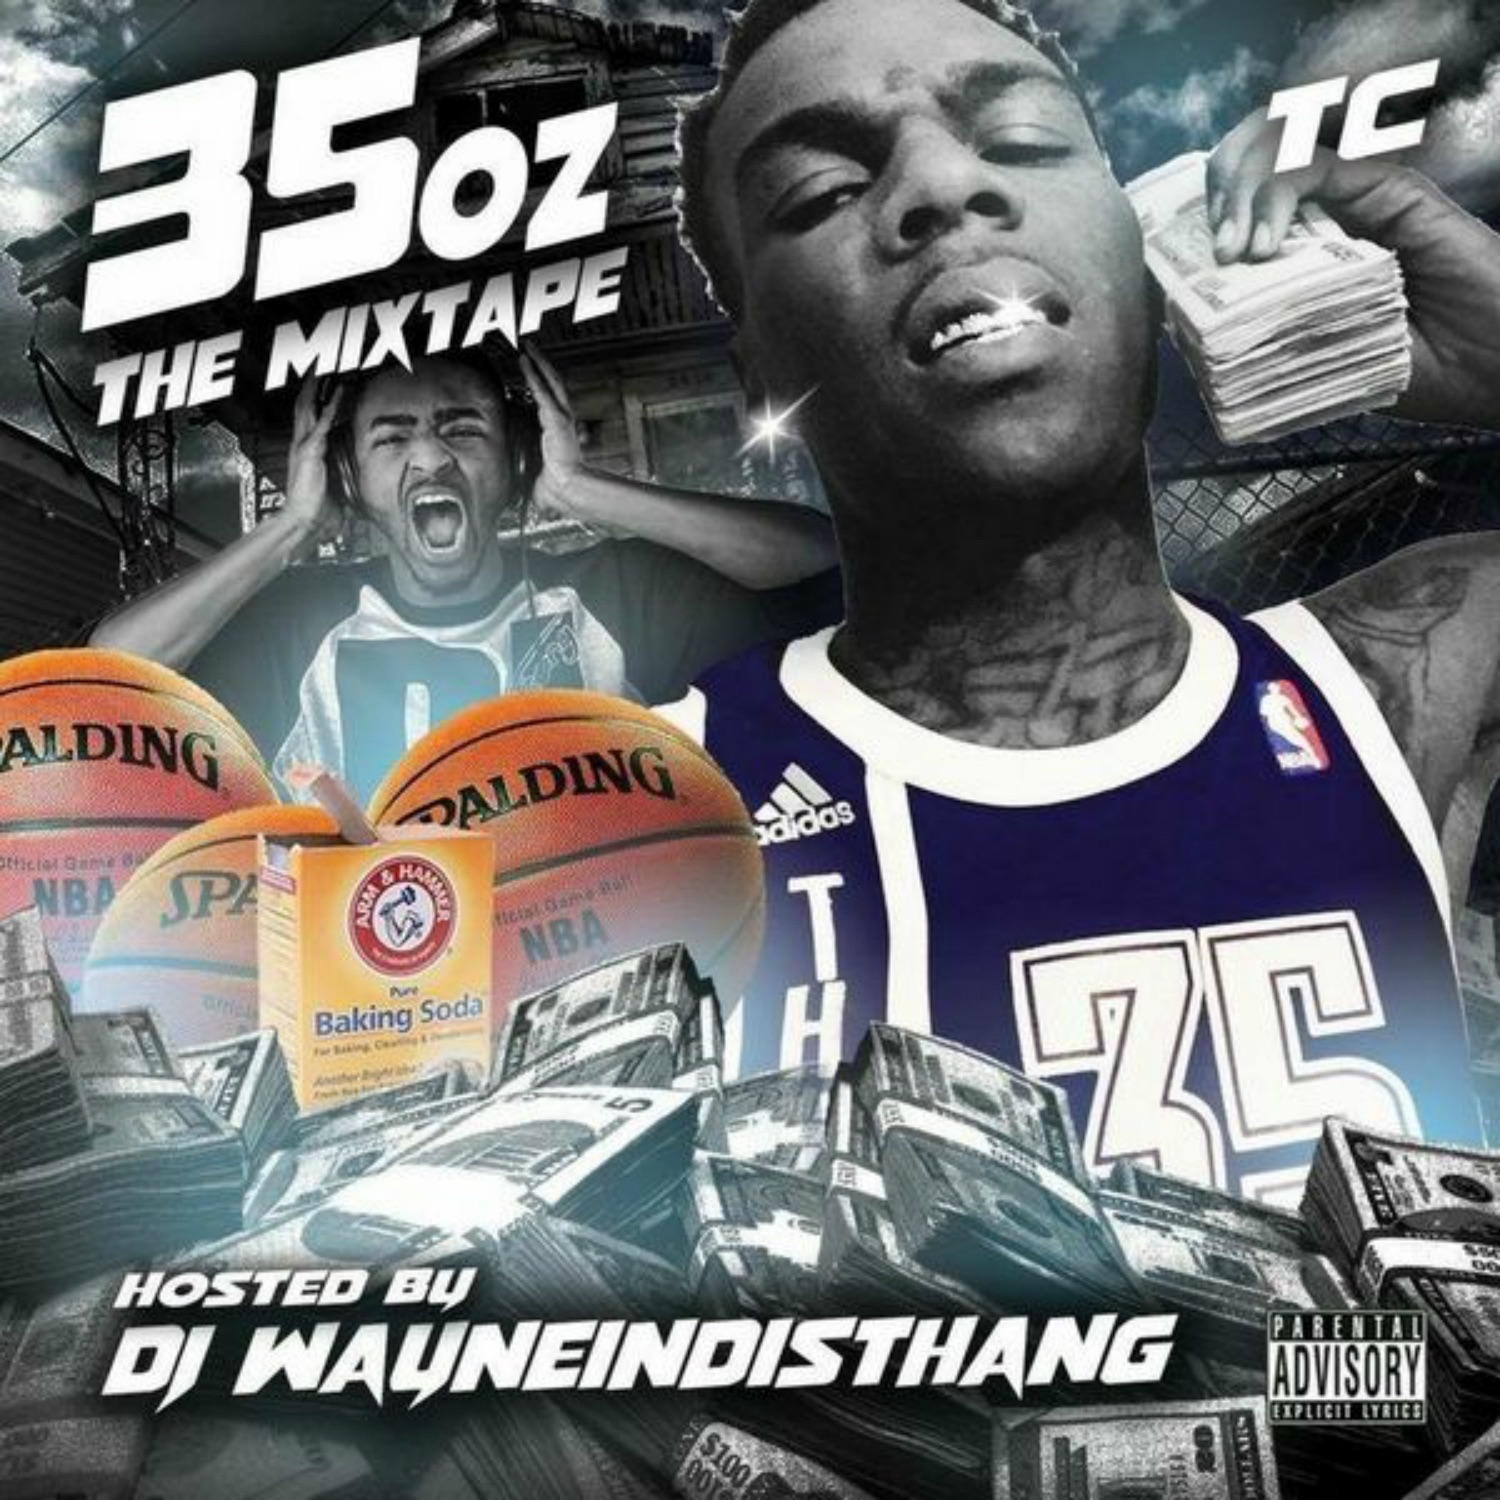 35 Oz the Mixtape